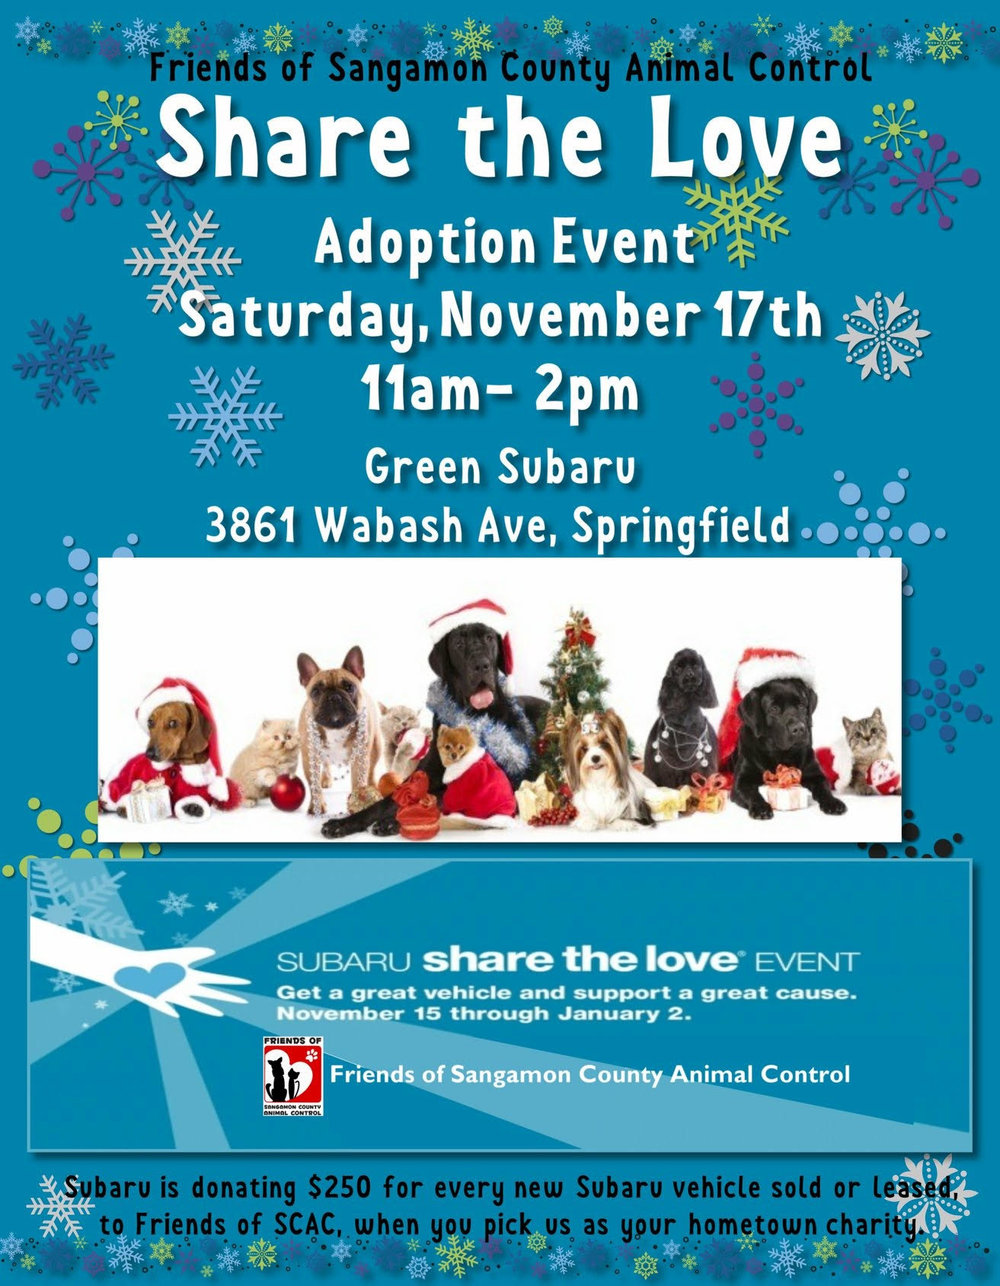 Share the Love Adoption Event Flyer 2018.jpg